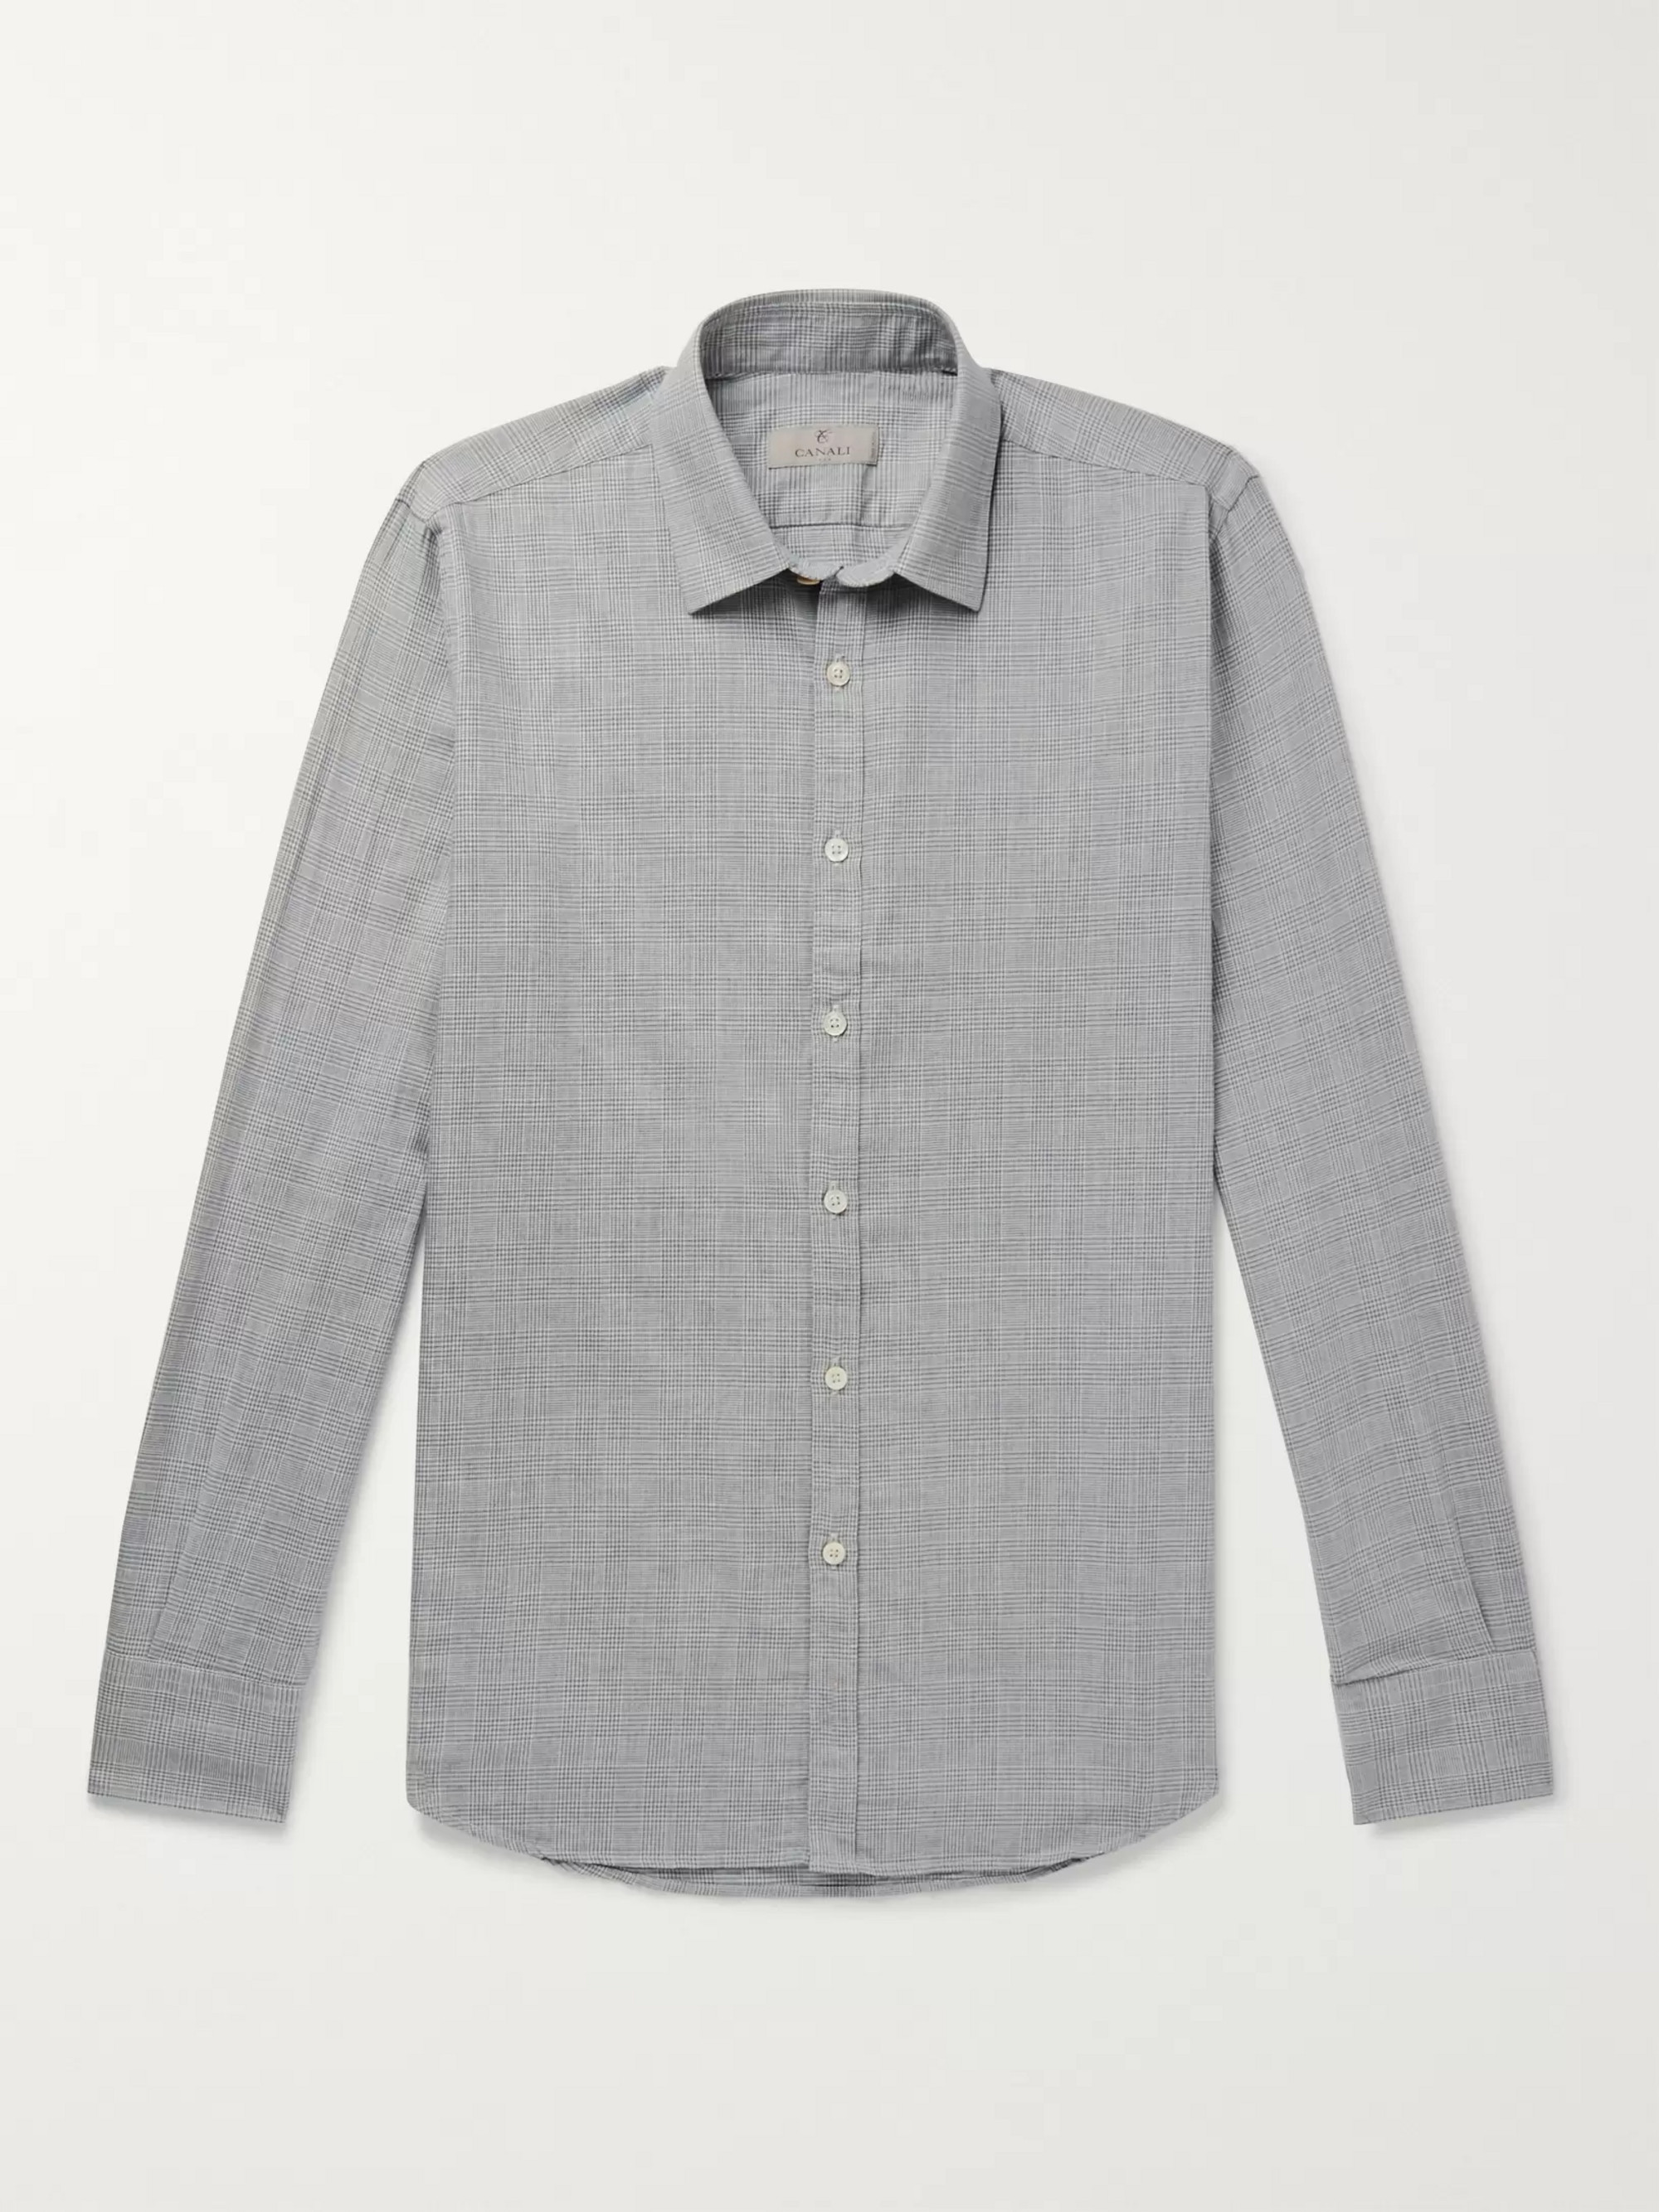 Canali Slim-Fit Houndstooth Cotton Shirt